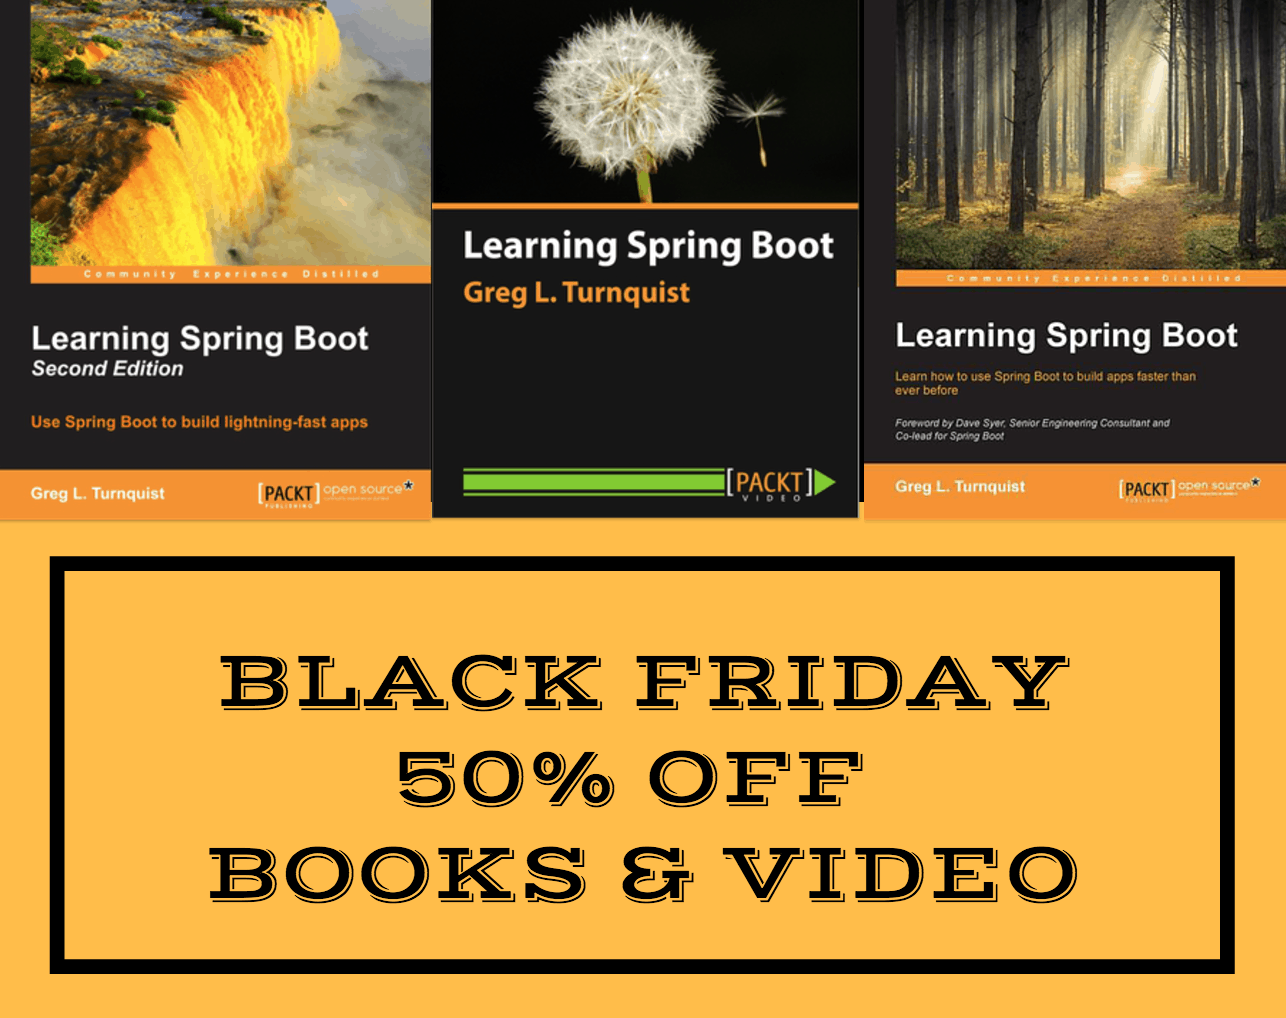 learning-spring-boot-black-friday-2016